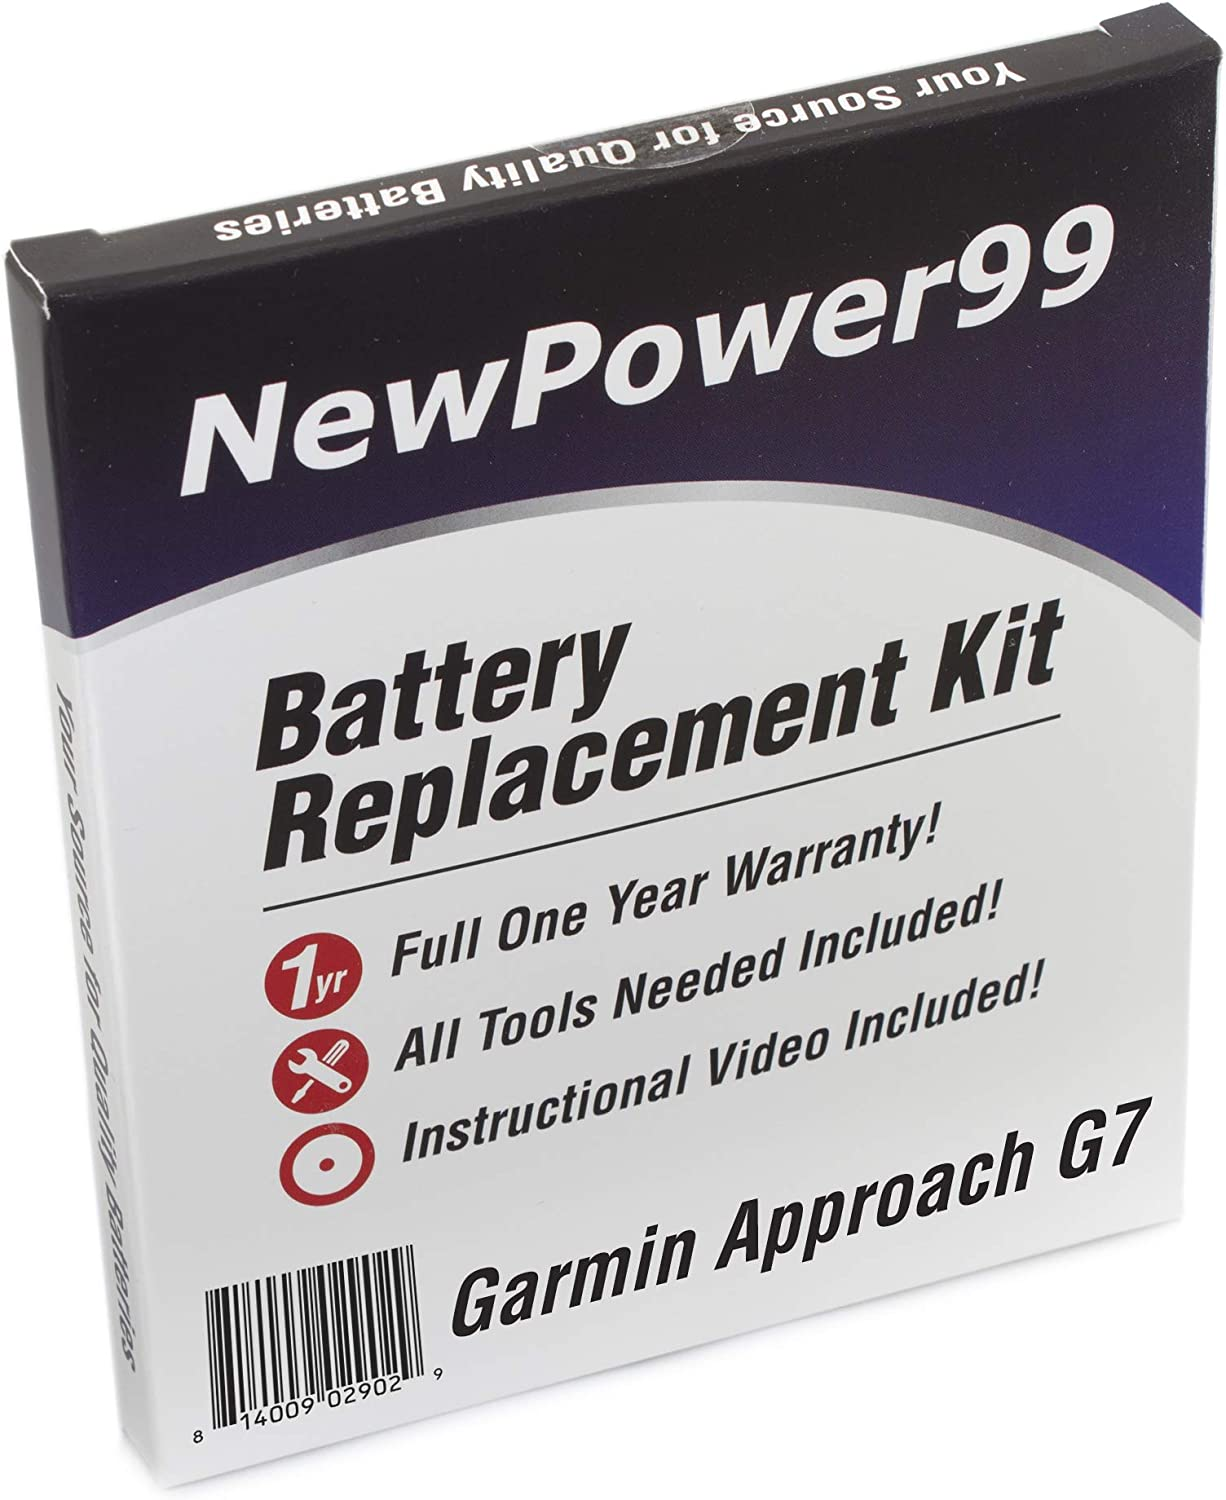 Battery Kit for Garmin Approach G7 with Tools How-to Video and Long Lasting Battery from NewPower99